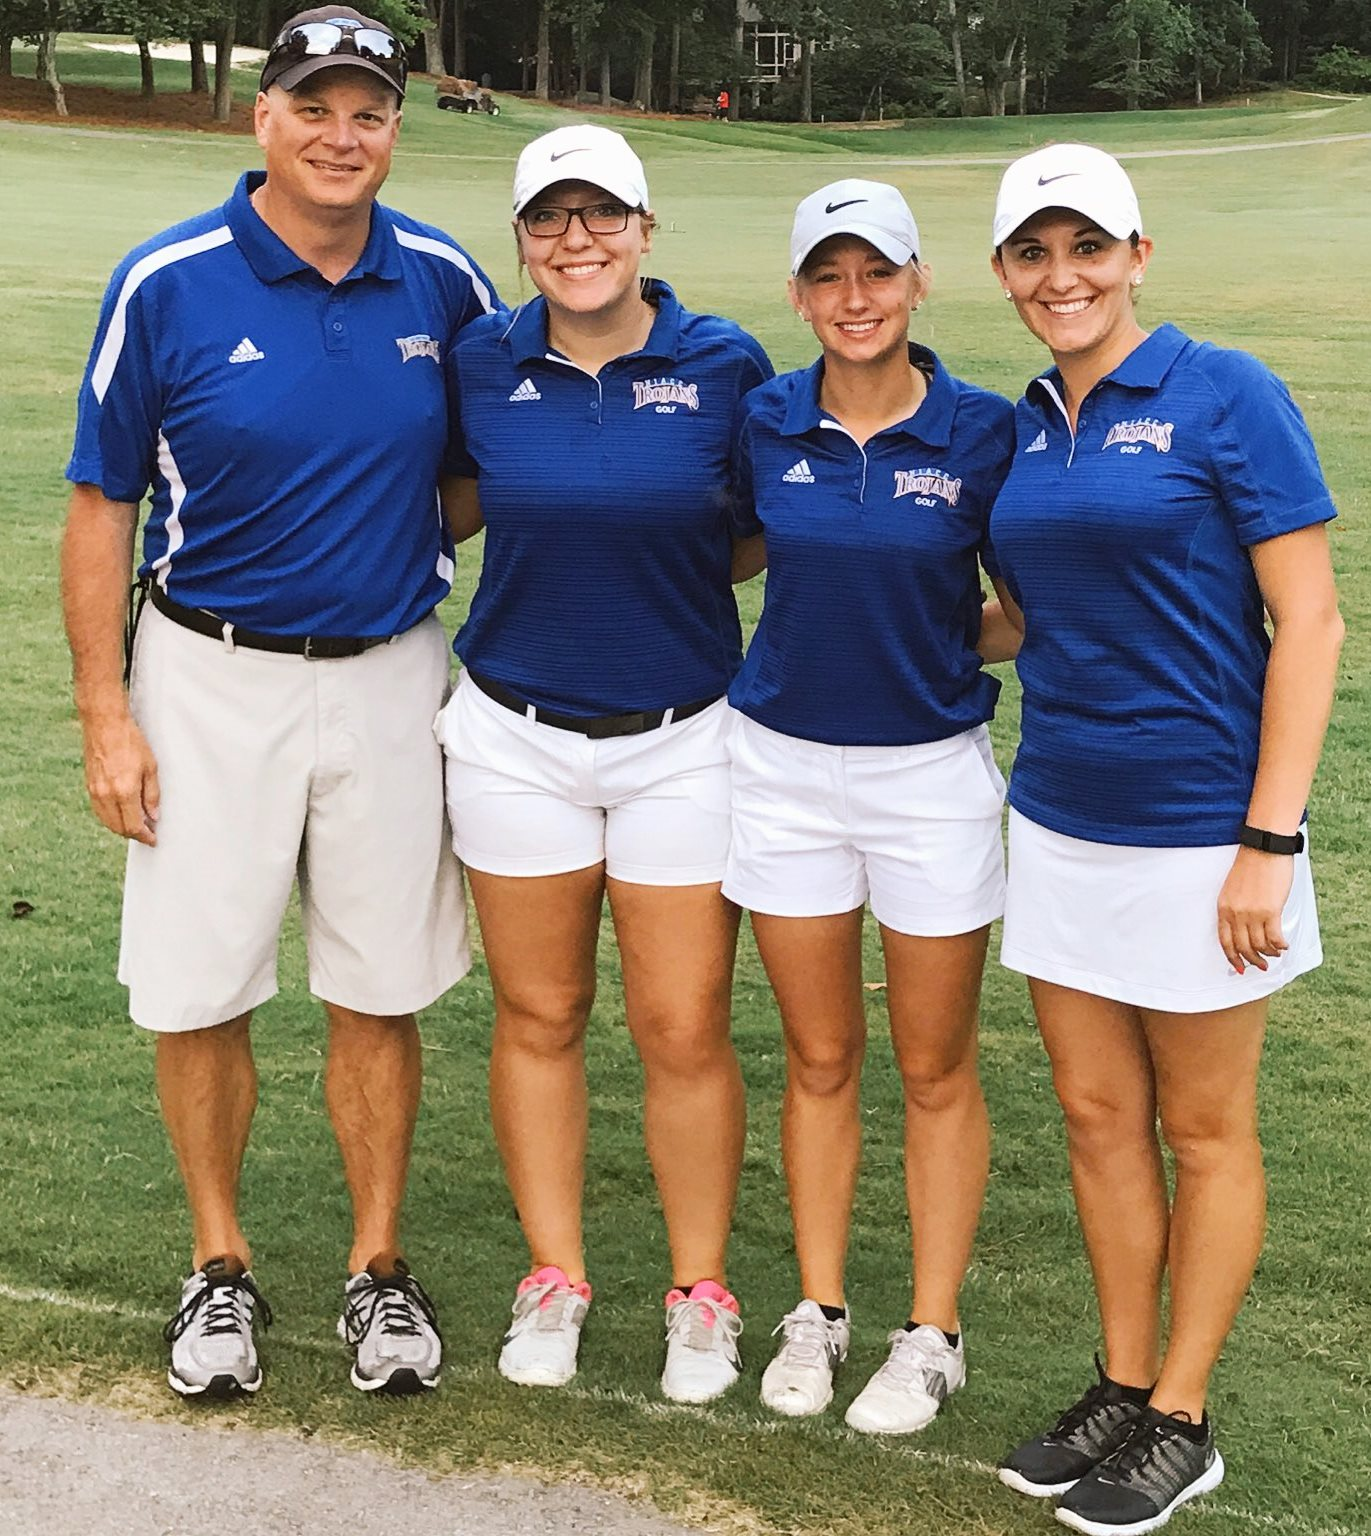 NIACC's Chris Frenz (head coach), Brooke Maasch, Courtney Tusler and Alexandria Eckenrod (assistant coach).